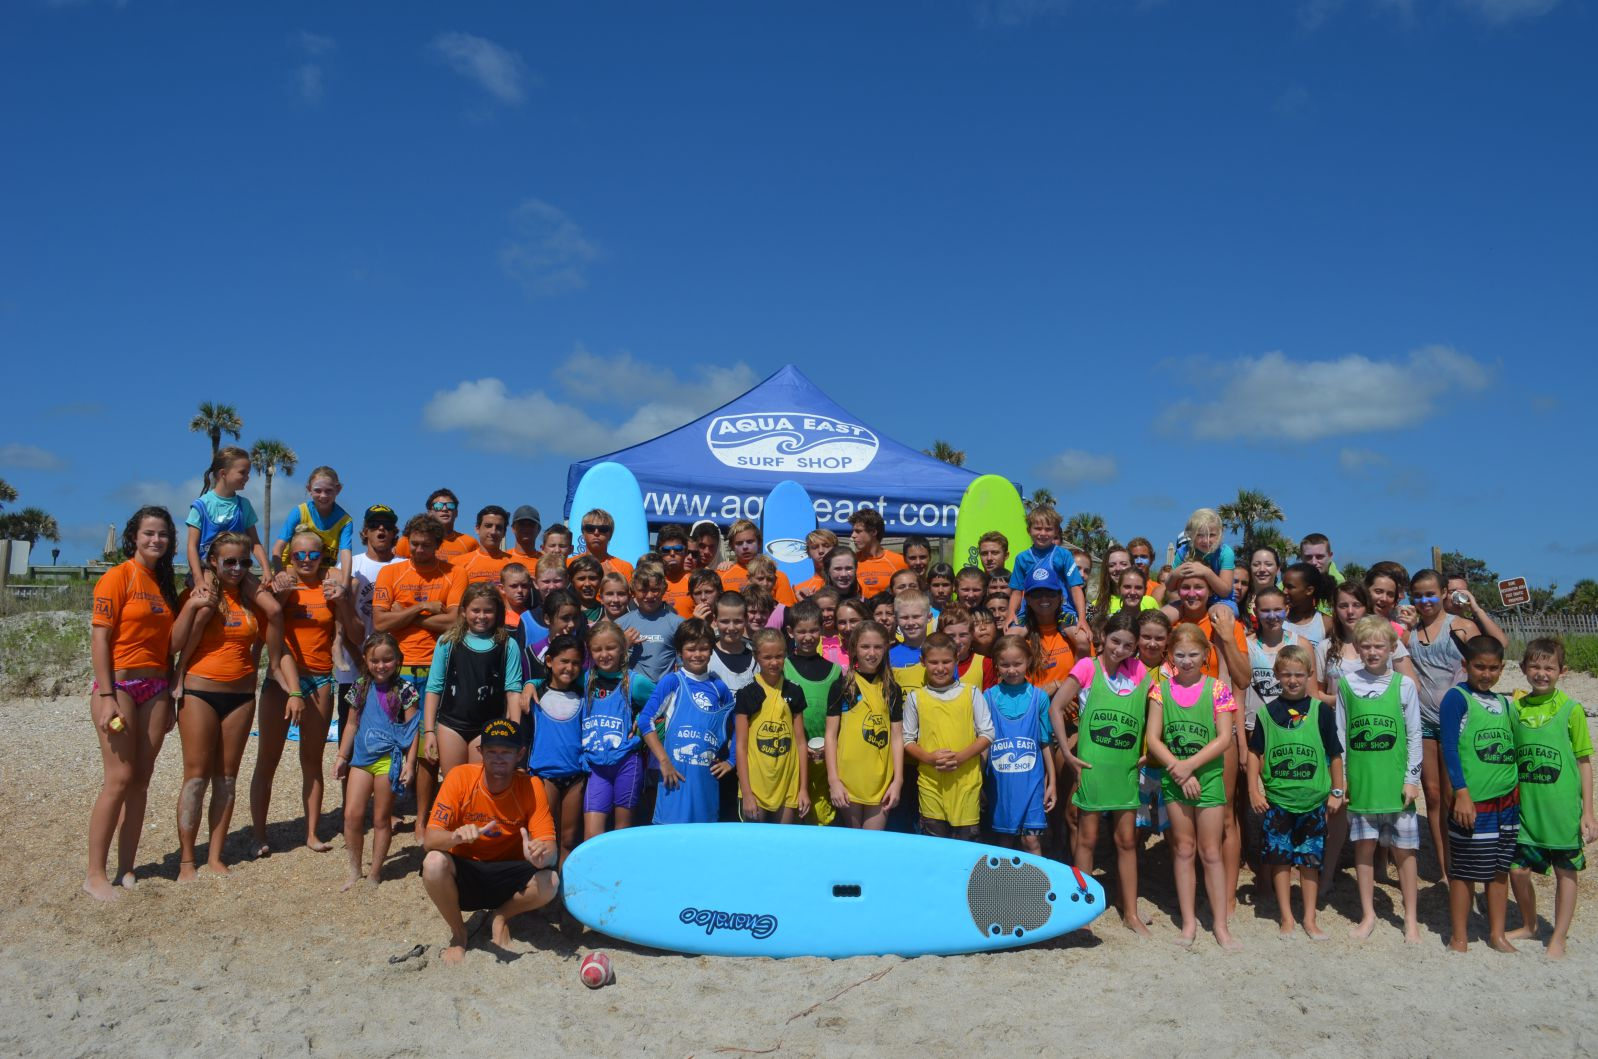 Surf Into Summer image 12